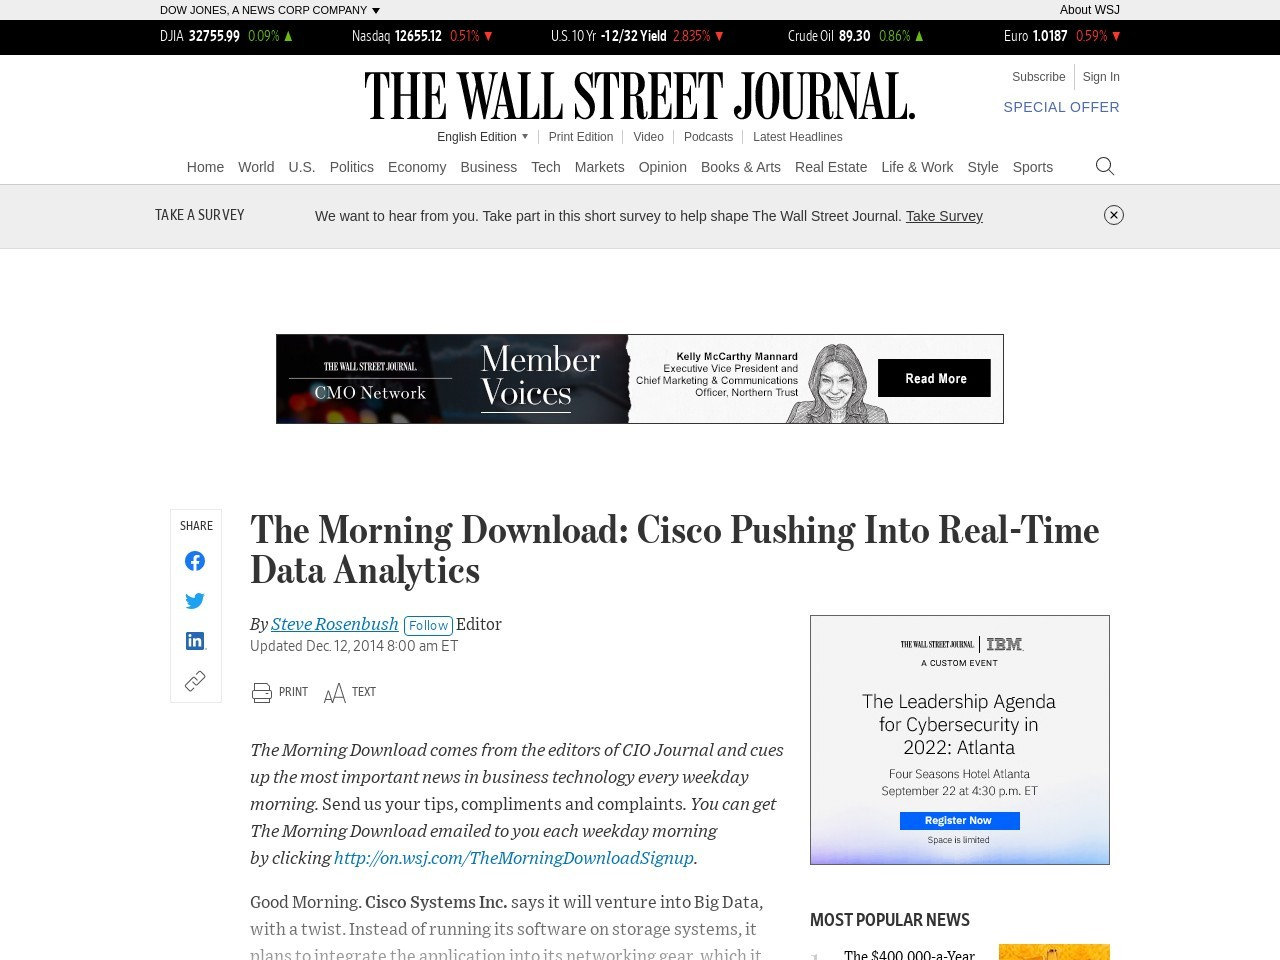 The Morning Download: Cisco Pushing Into Real-Time Data Analytics